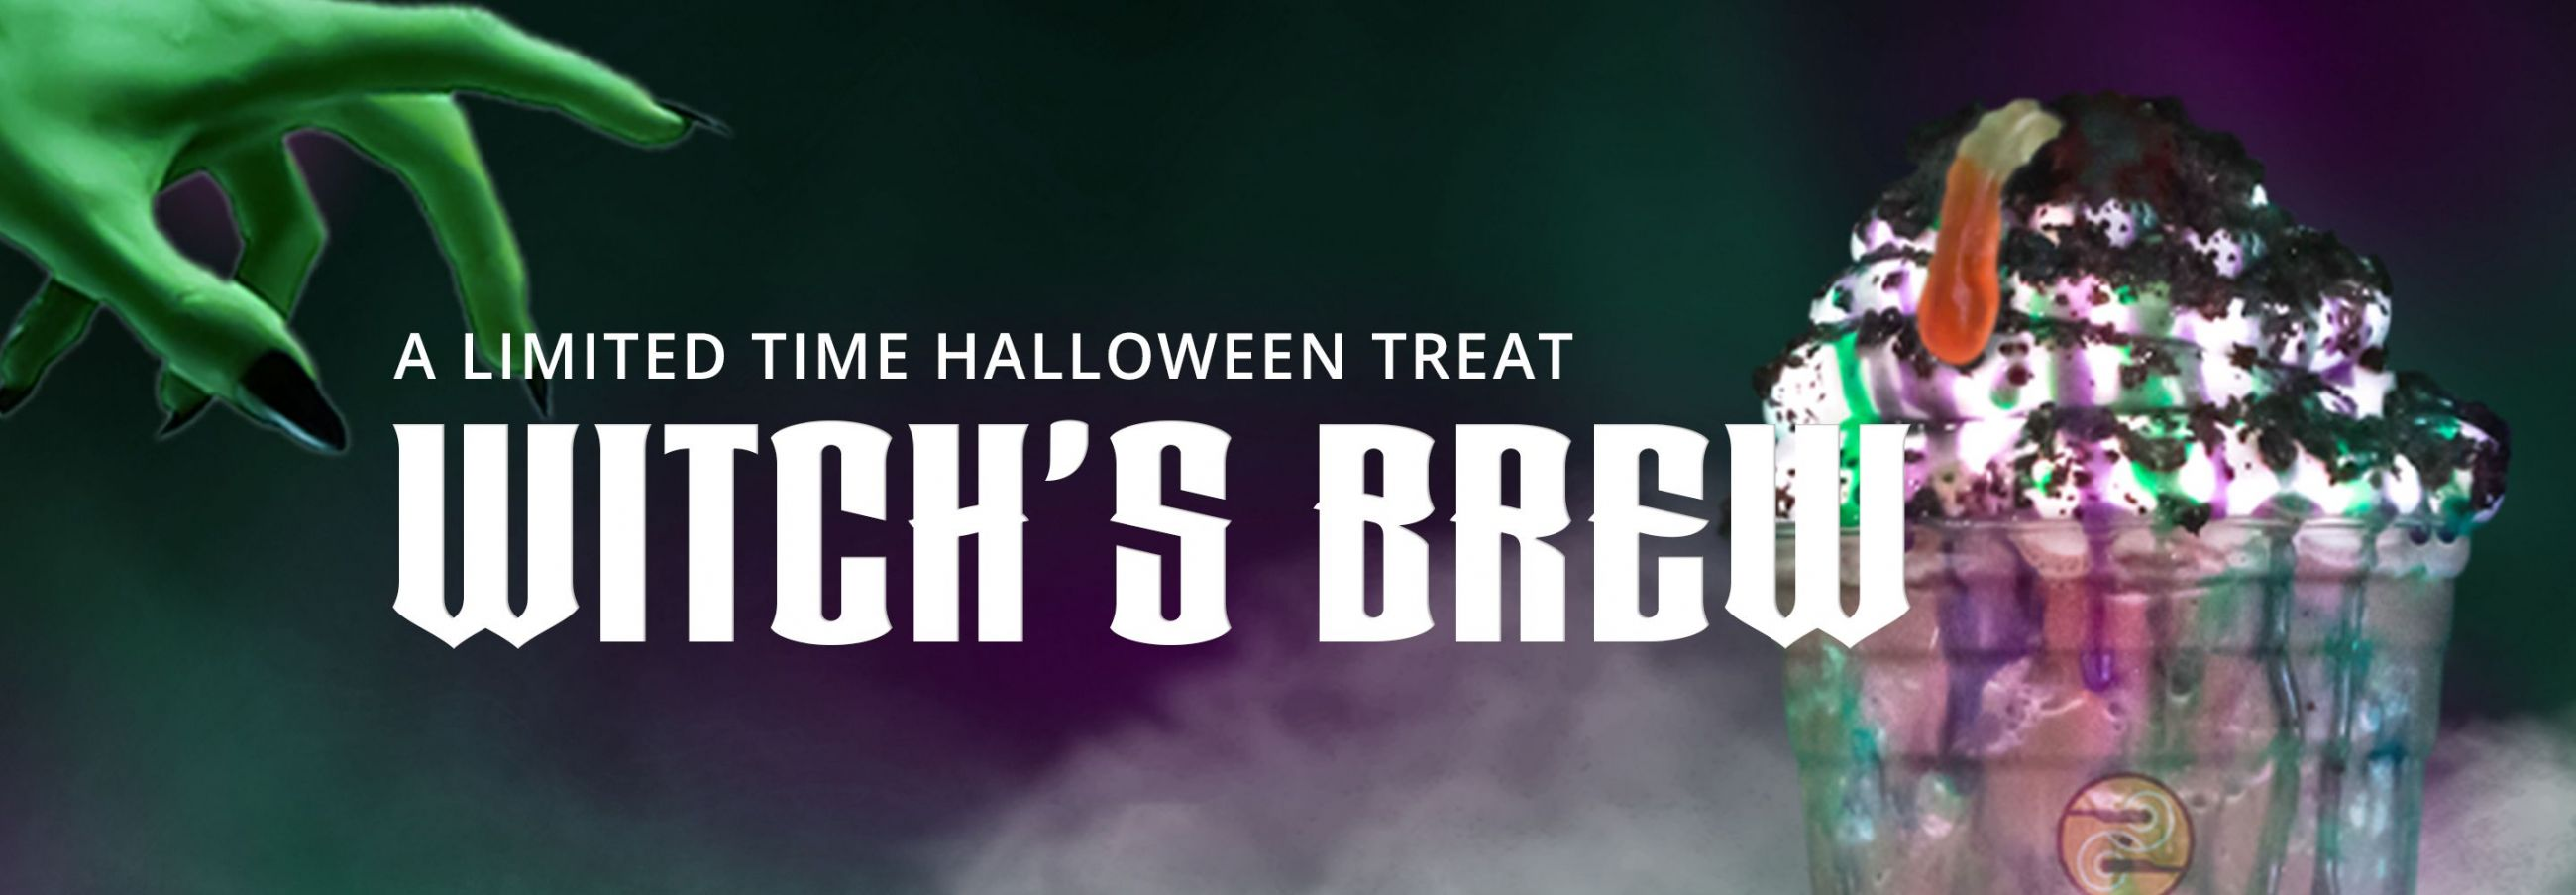 A Limited Time Halloween Treat Witch's Brew